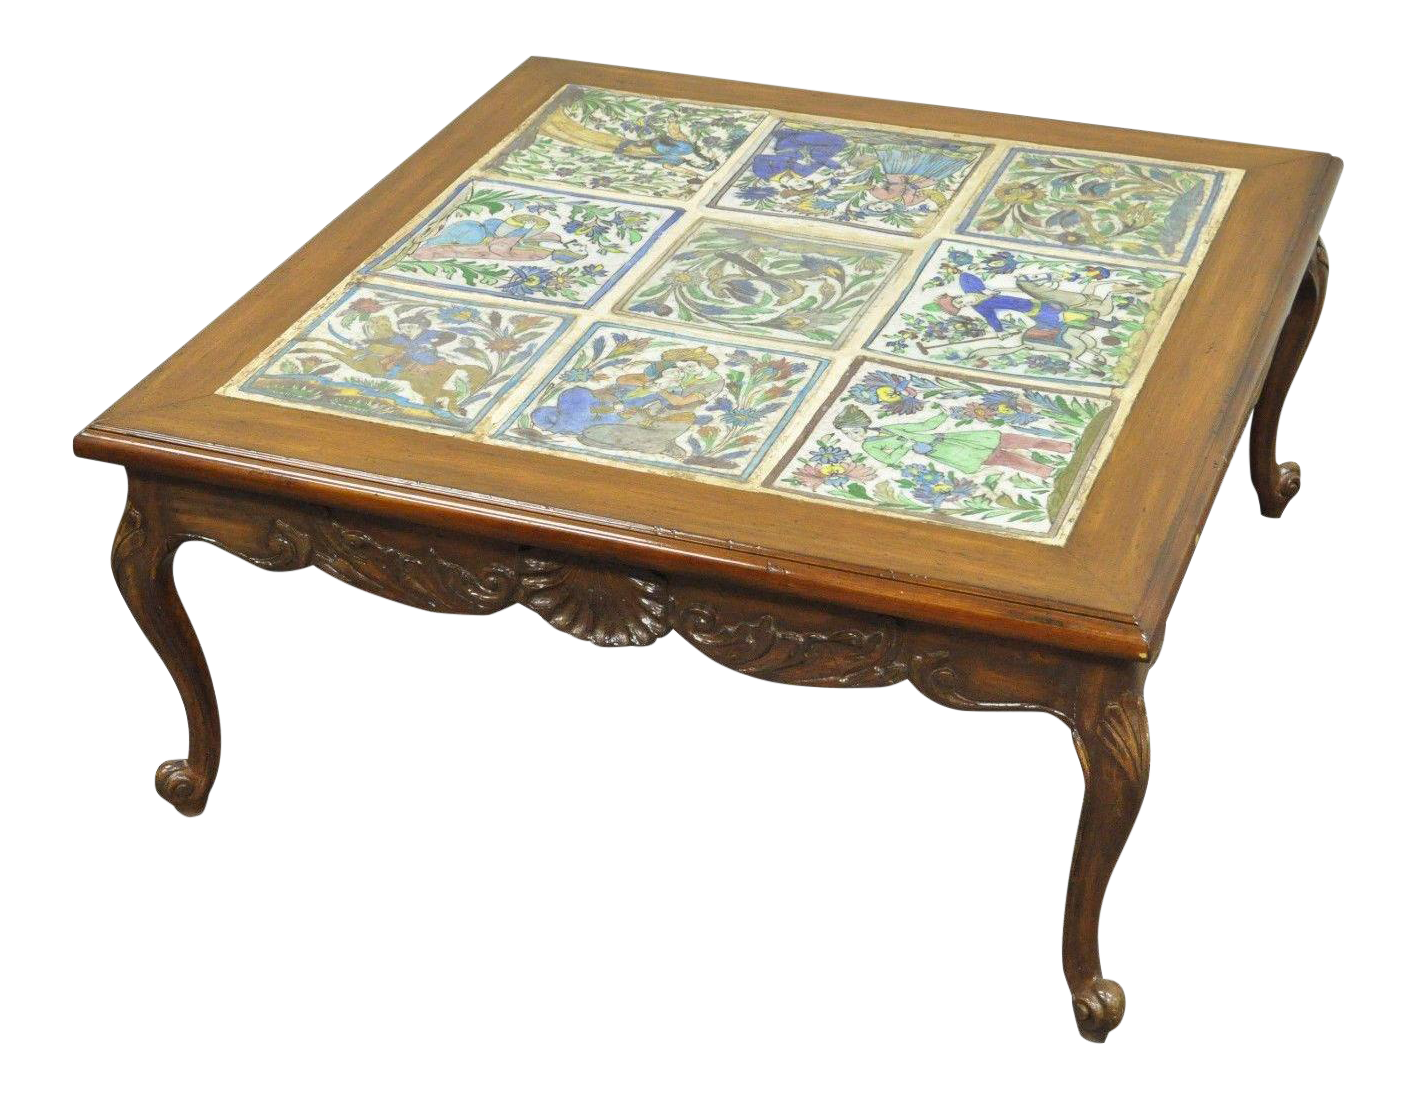 Square vintage french country louis xv carved walnut tile top square vintage french country louis xv carved walnut tile top coffee table chairish geotapseo Choice Image